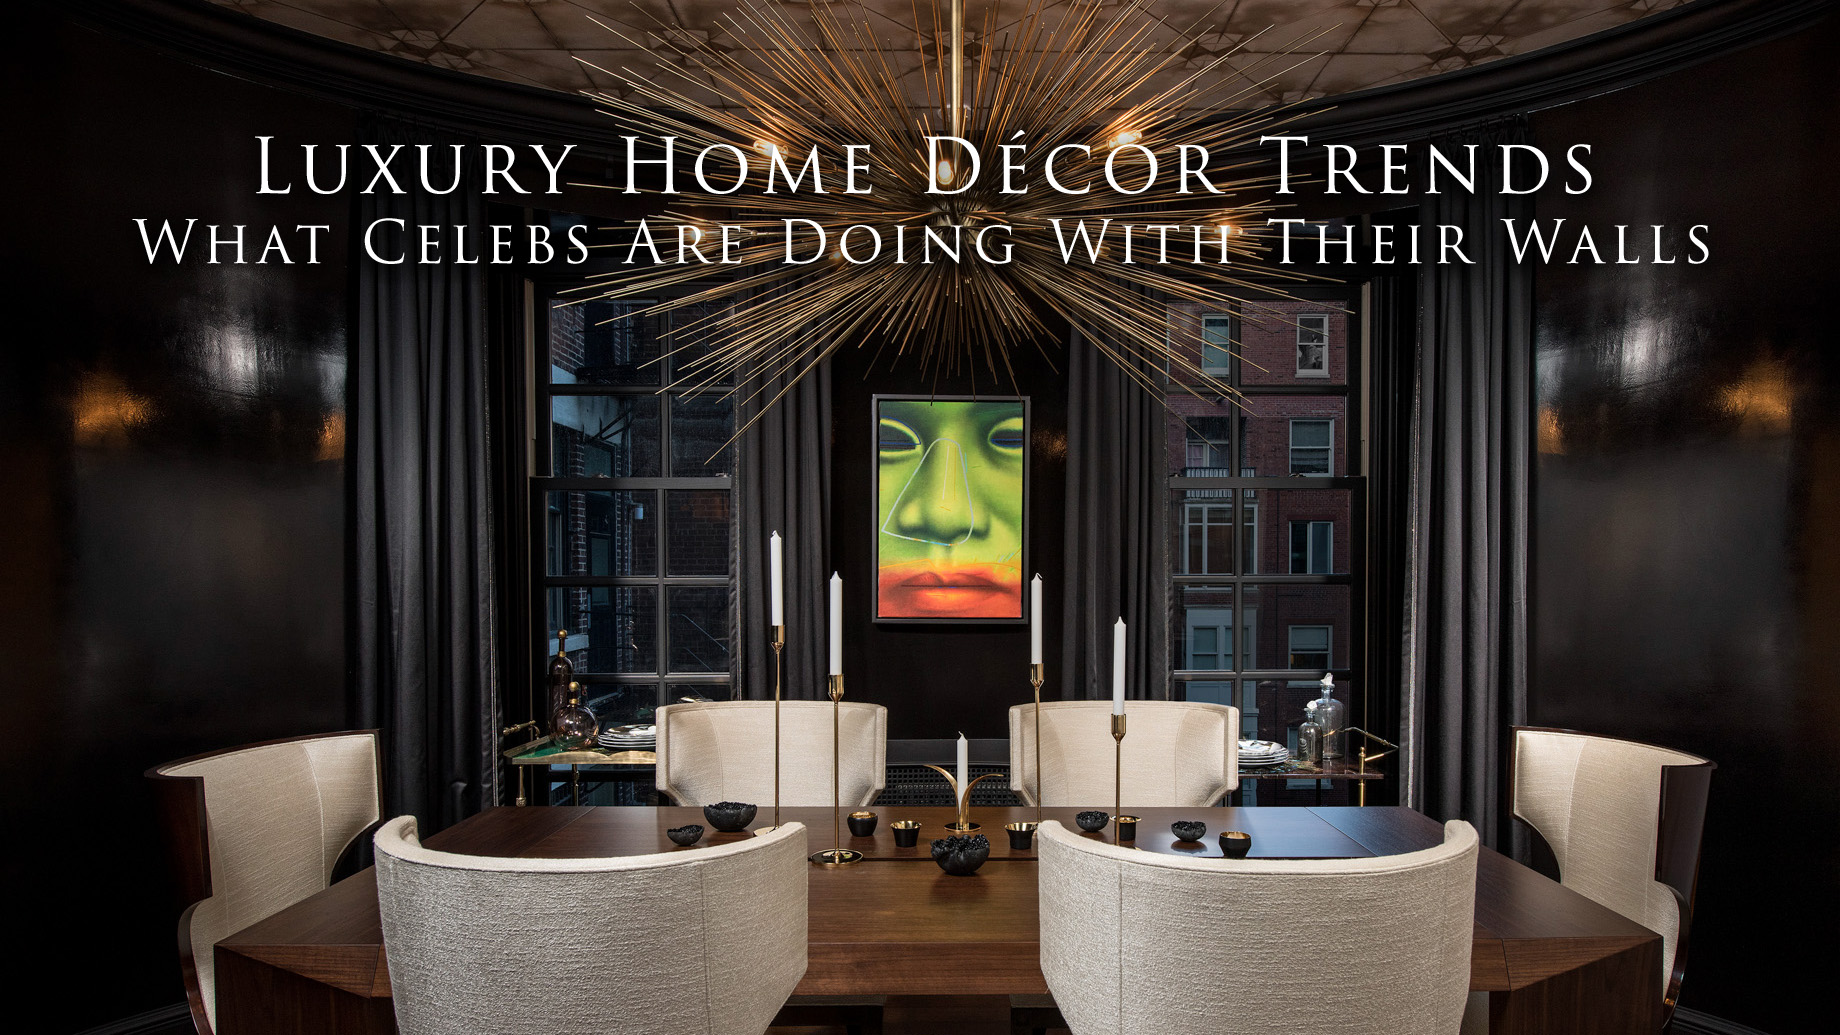 Luxury Home Décor Trends - What Celebs Are Doing With Their Walls